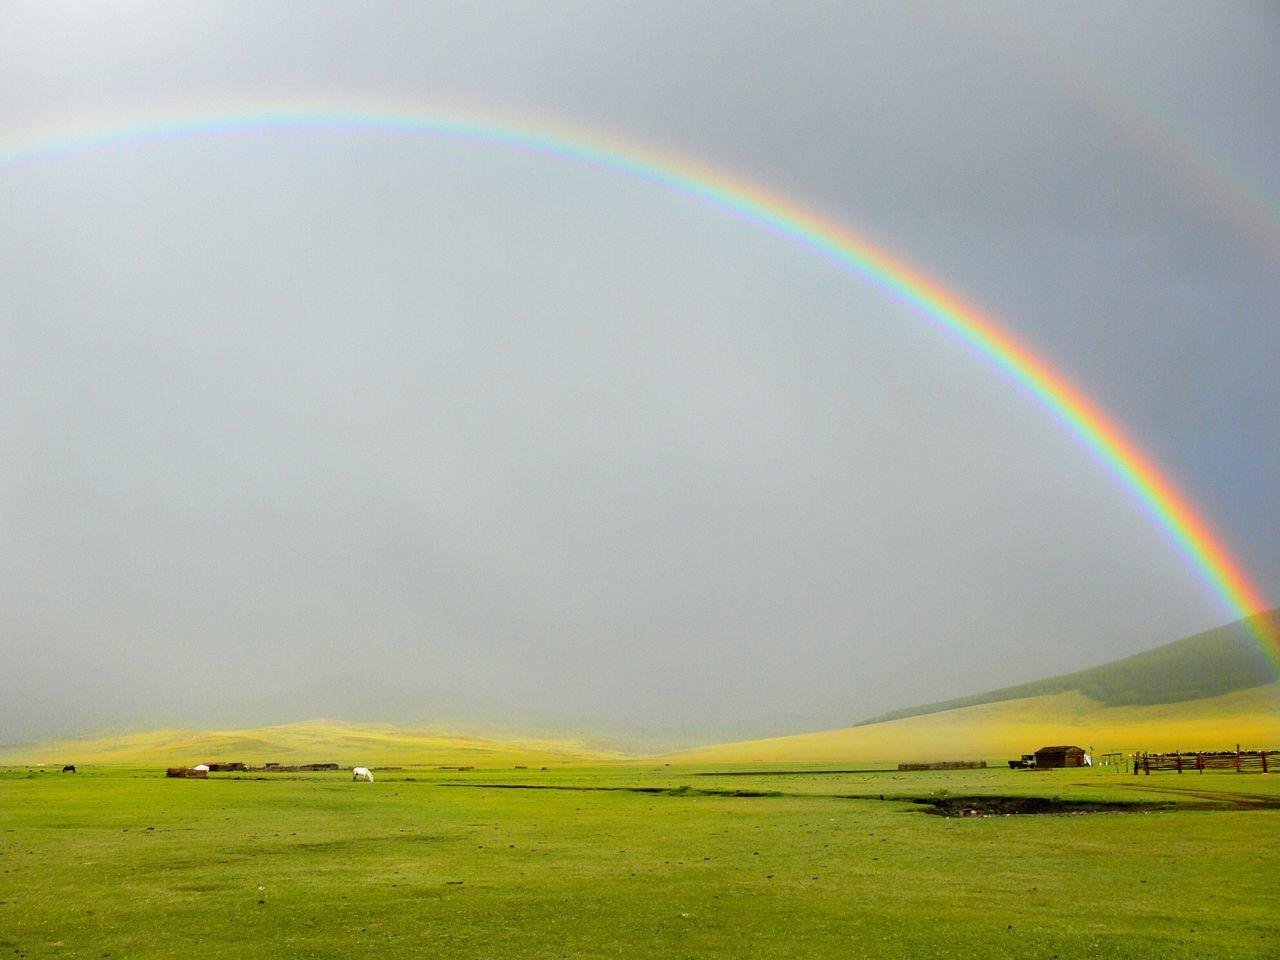 Rainbow Double Rainbow Grass Outdoors No People Refraction Scenics Landscape Nature Beauty In Nature Golf Course Natural Phenomenon Clouds Cloudy Grey Green Grass Grassland Plain Plains EyeEmNewHere Mongolia Storm Cloud Tranquil Scene Tranquility